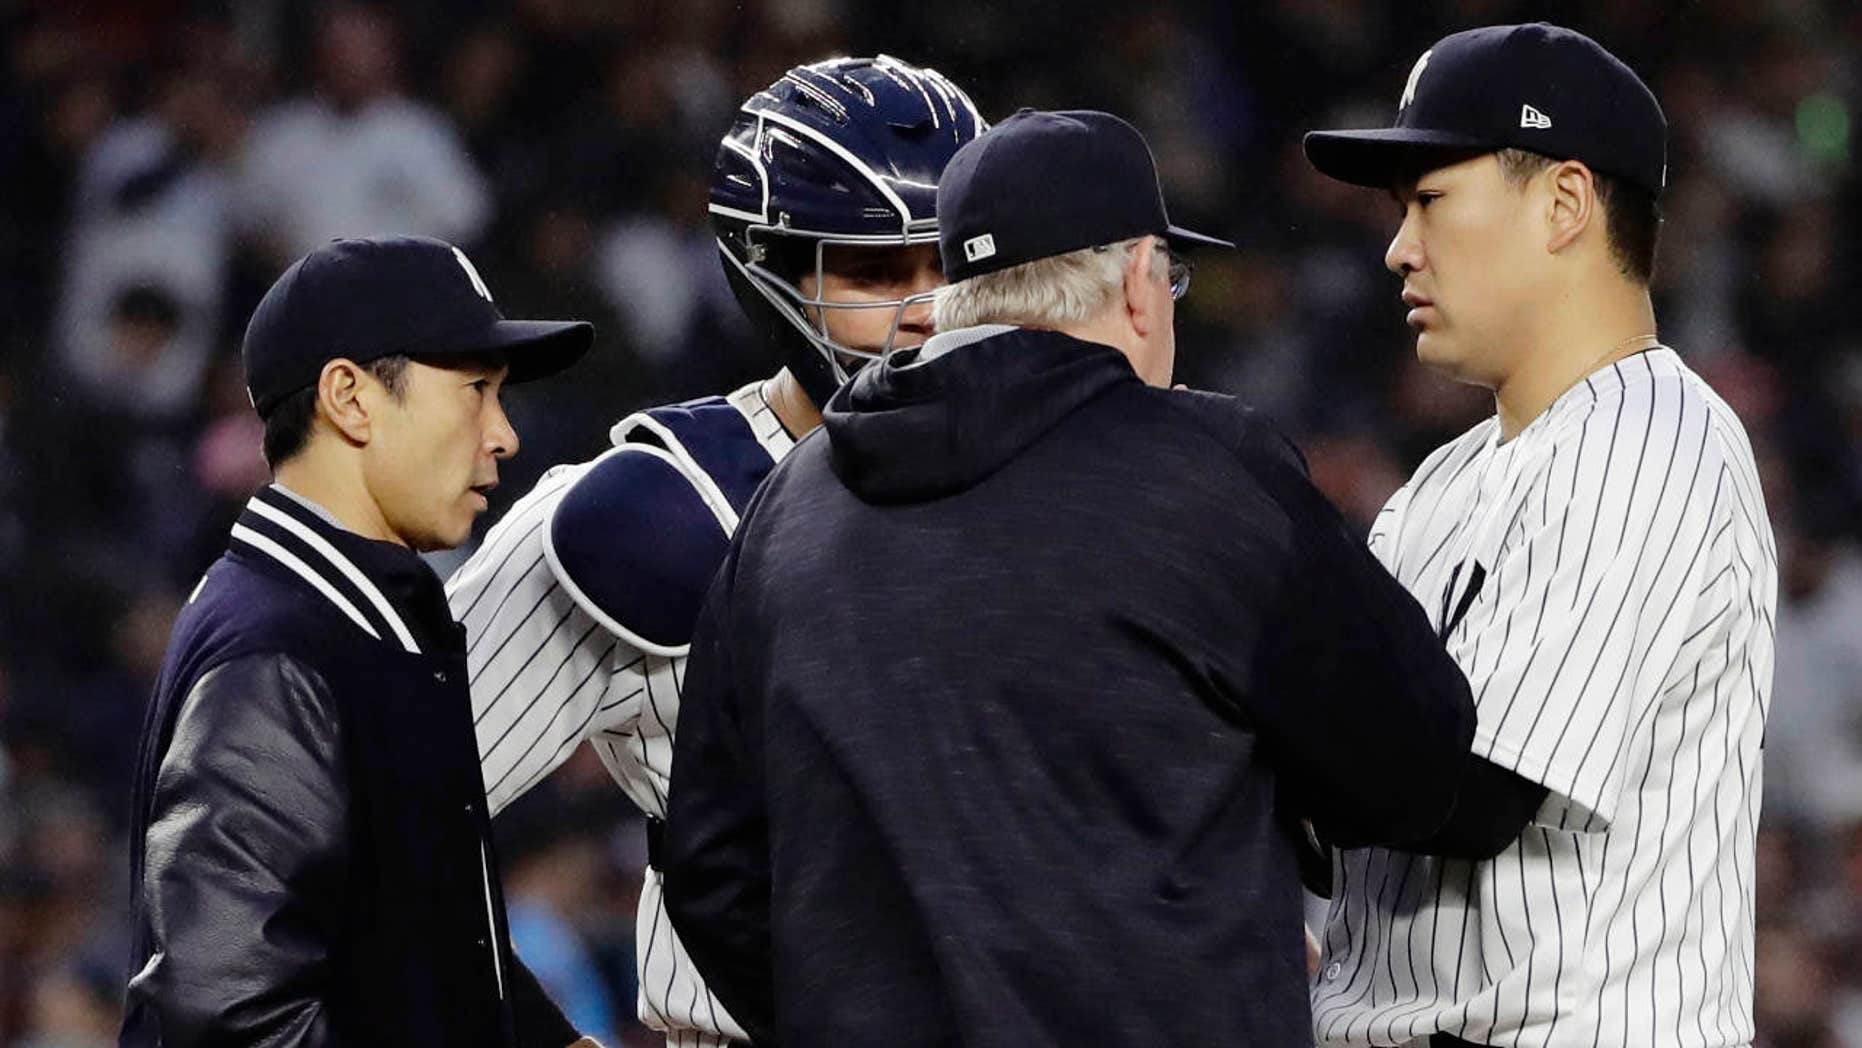 June 6, 2017: New York Yankees starting pitcher Masahiro Tanaka, of Japan, right, talks to catcher Gary Sanchez, second from left, pitching coach Larry Rothschild and translator Shingo Horie, left, during the fourth inning of a baseball game in New York.